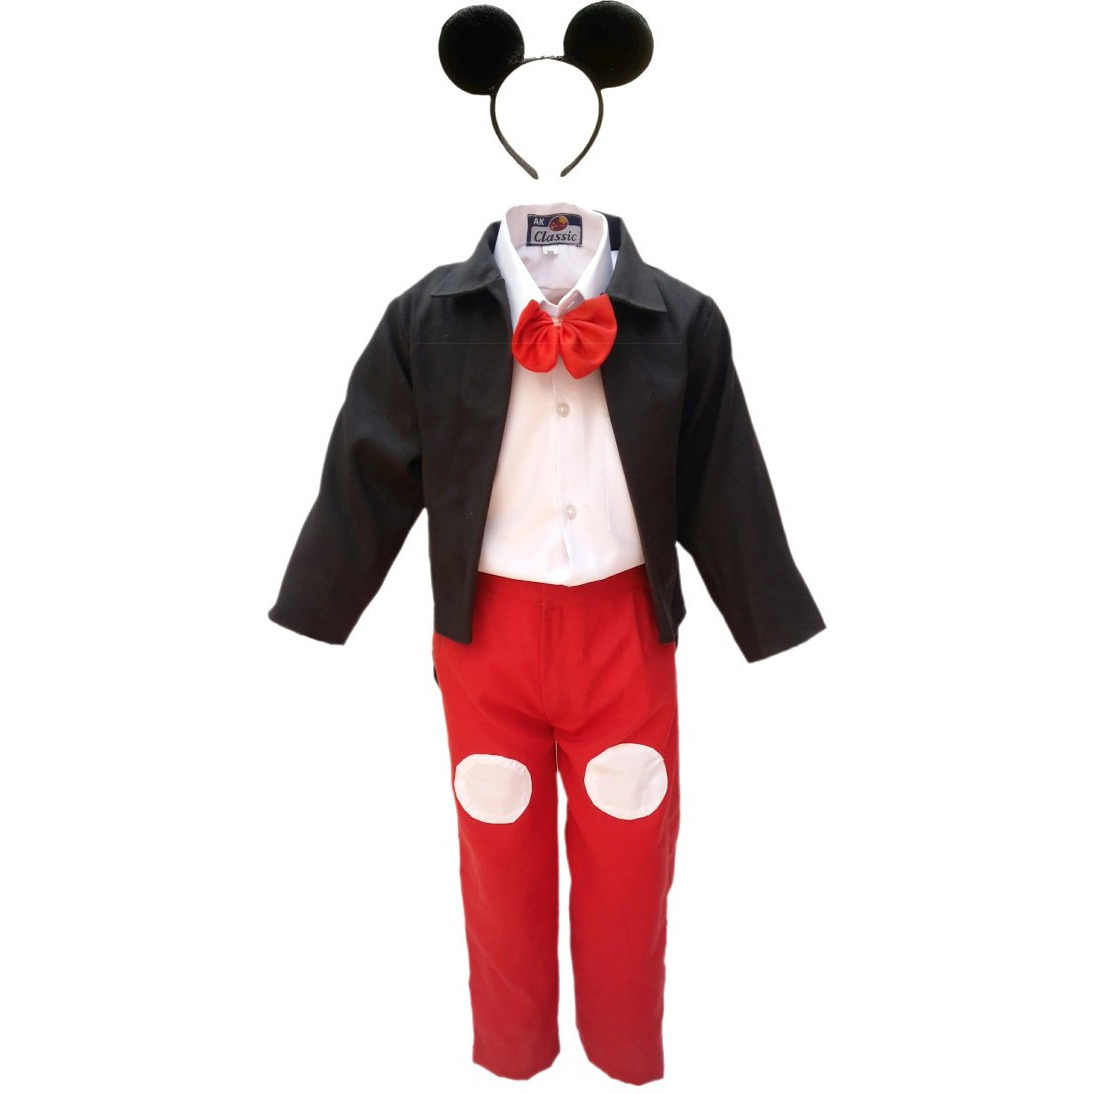 Cartoon costume for boy/ Annual function/Theme Party/Competition/Stage Shows/Birthday Party Dress